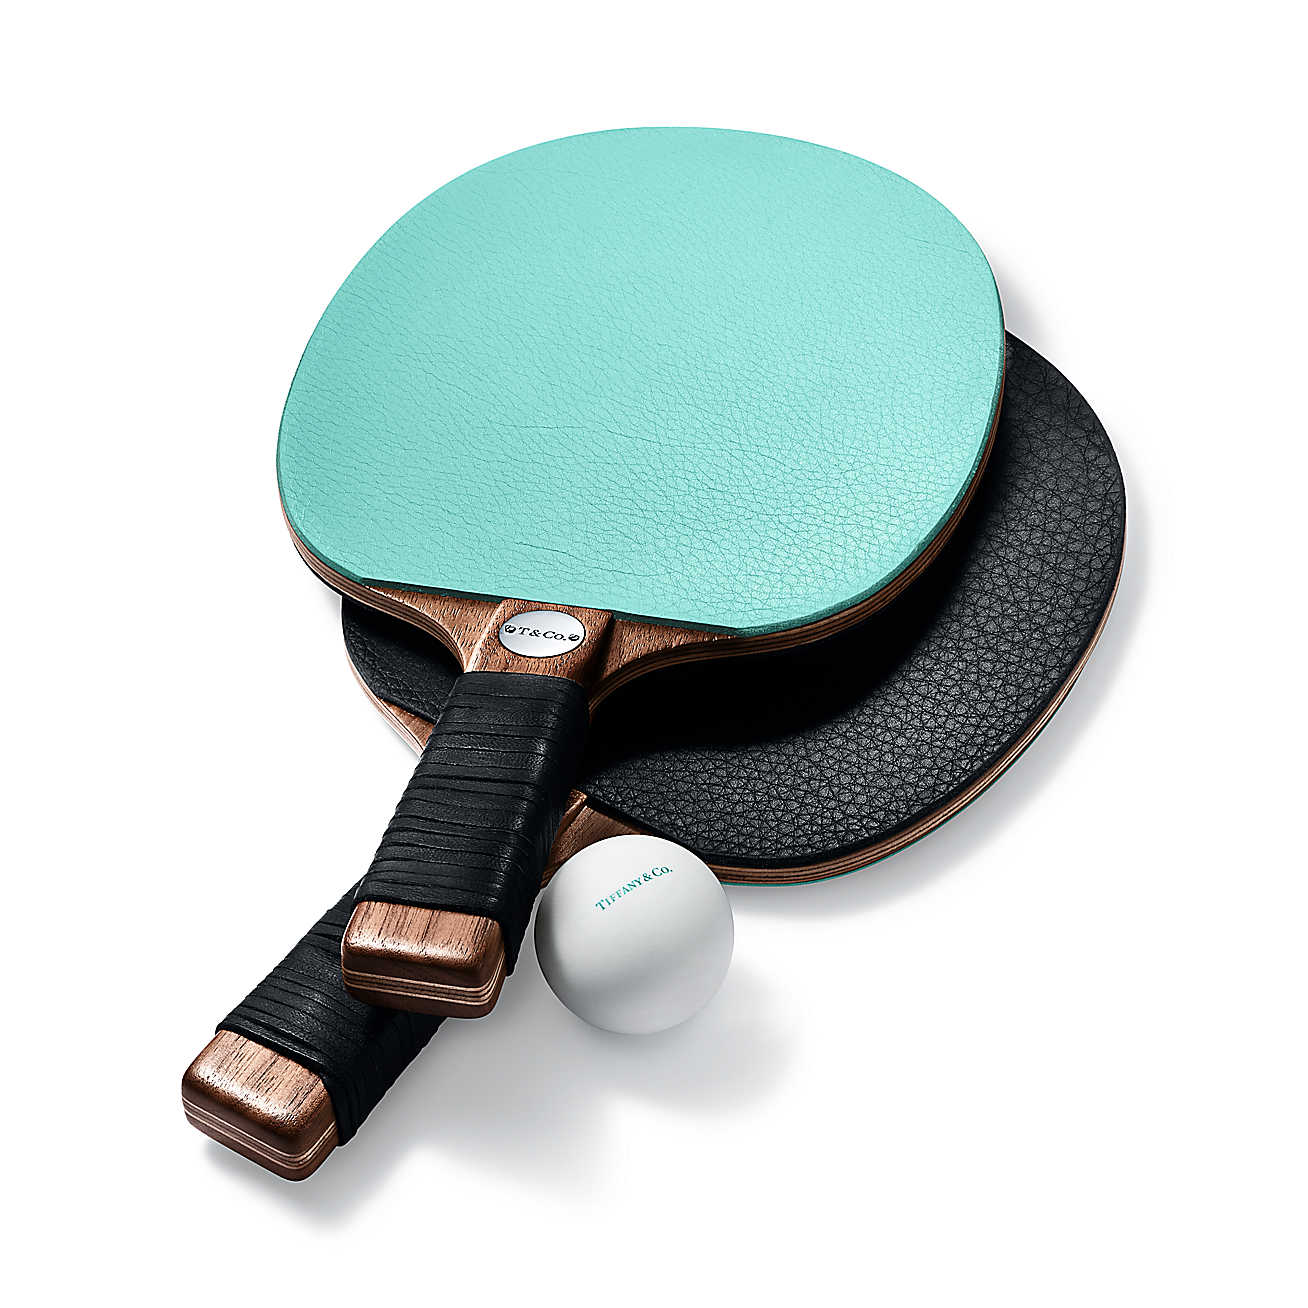 Leather and Walnut Table Tennis Paddles